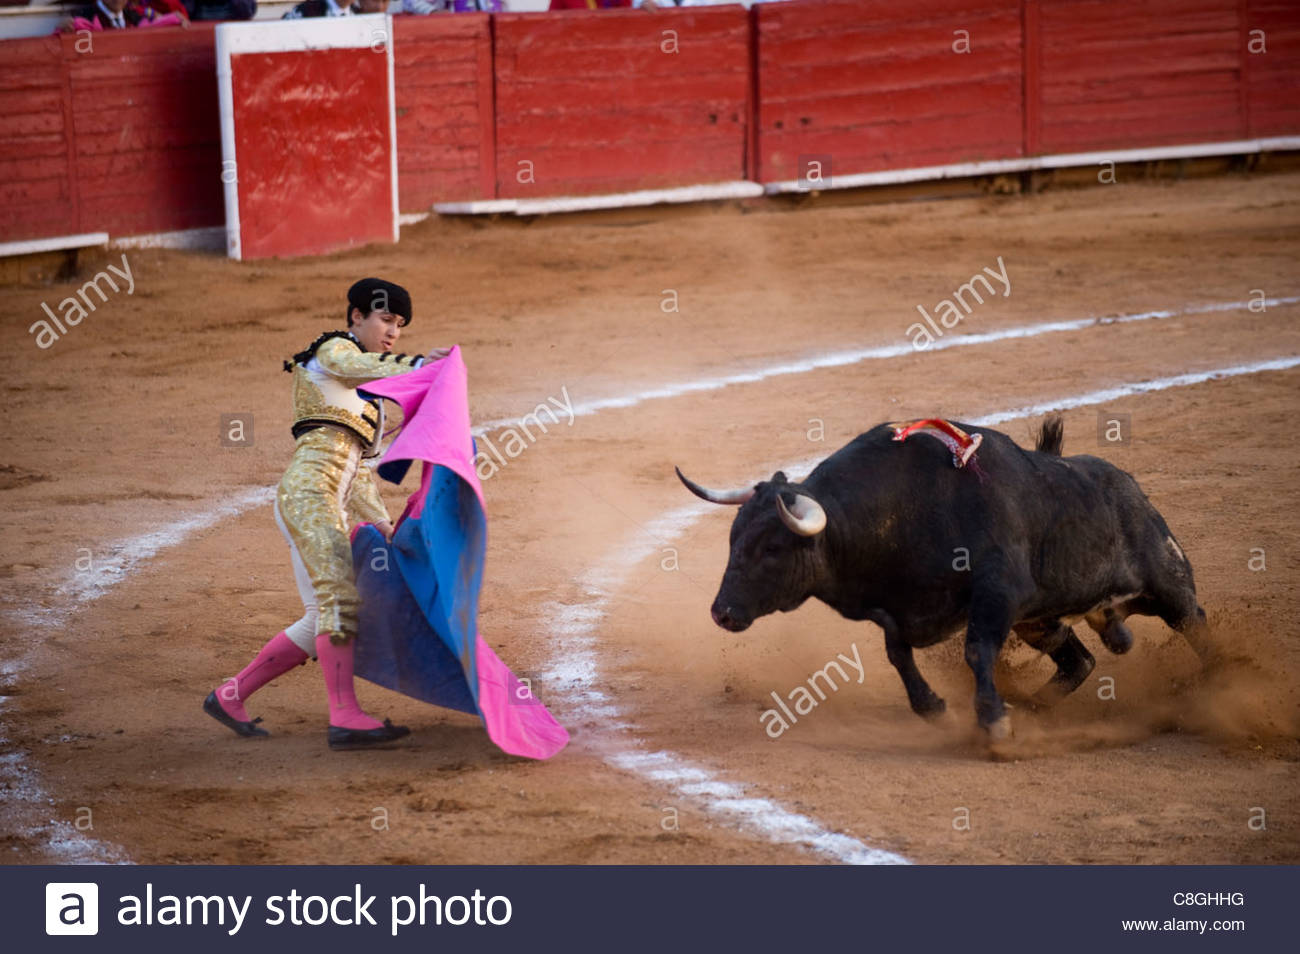 At a bullfight in Mexico City, a bull charges a Matador. Stock Photo